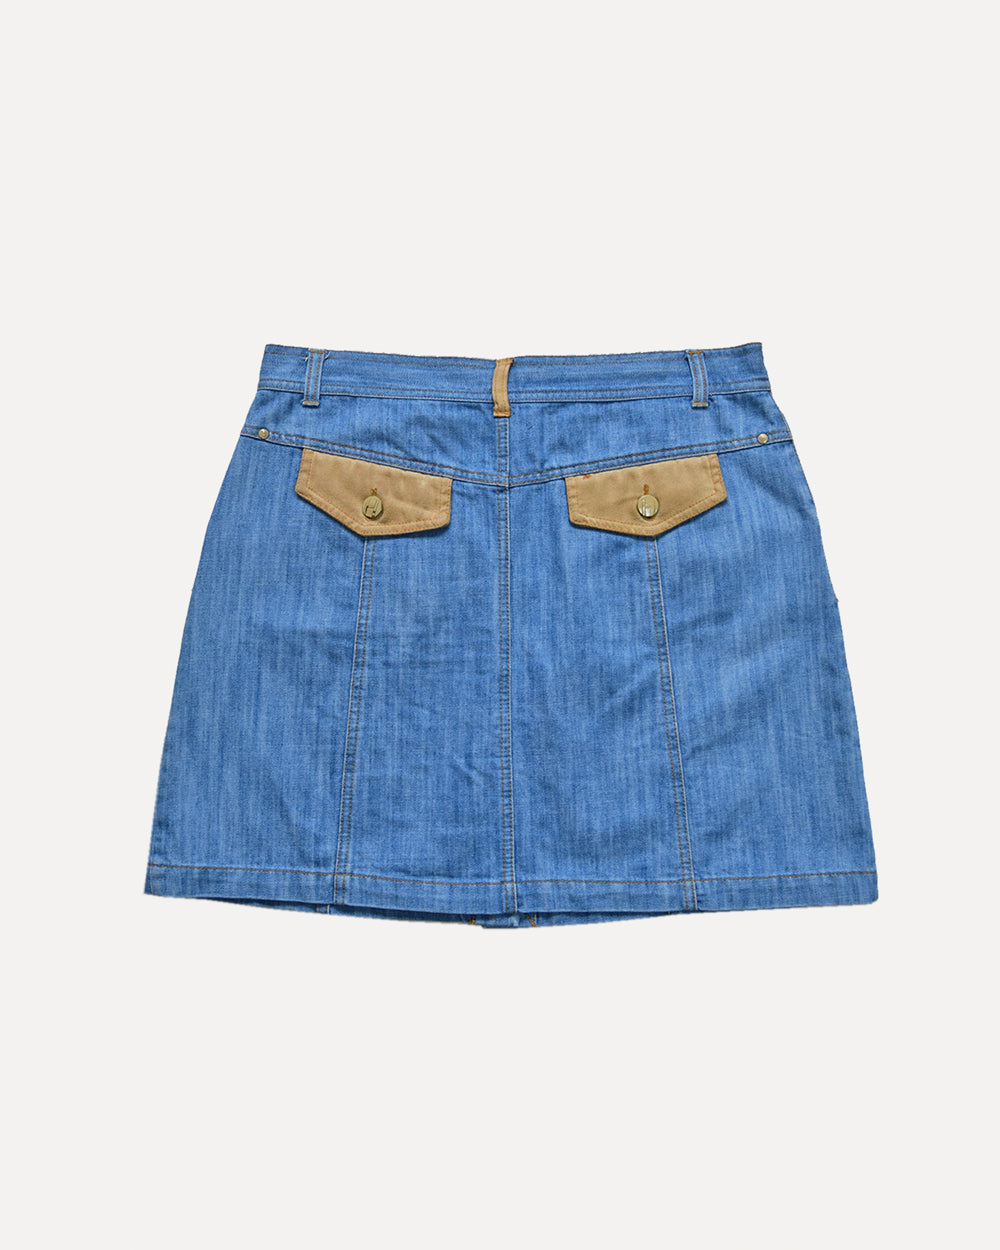 Henry Holland Denim Skirt | 14